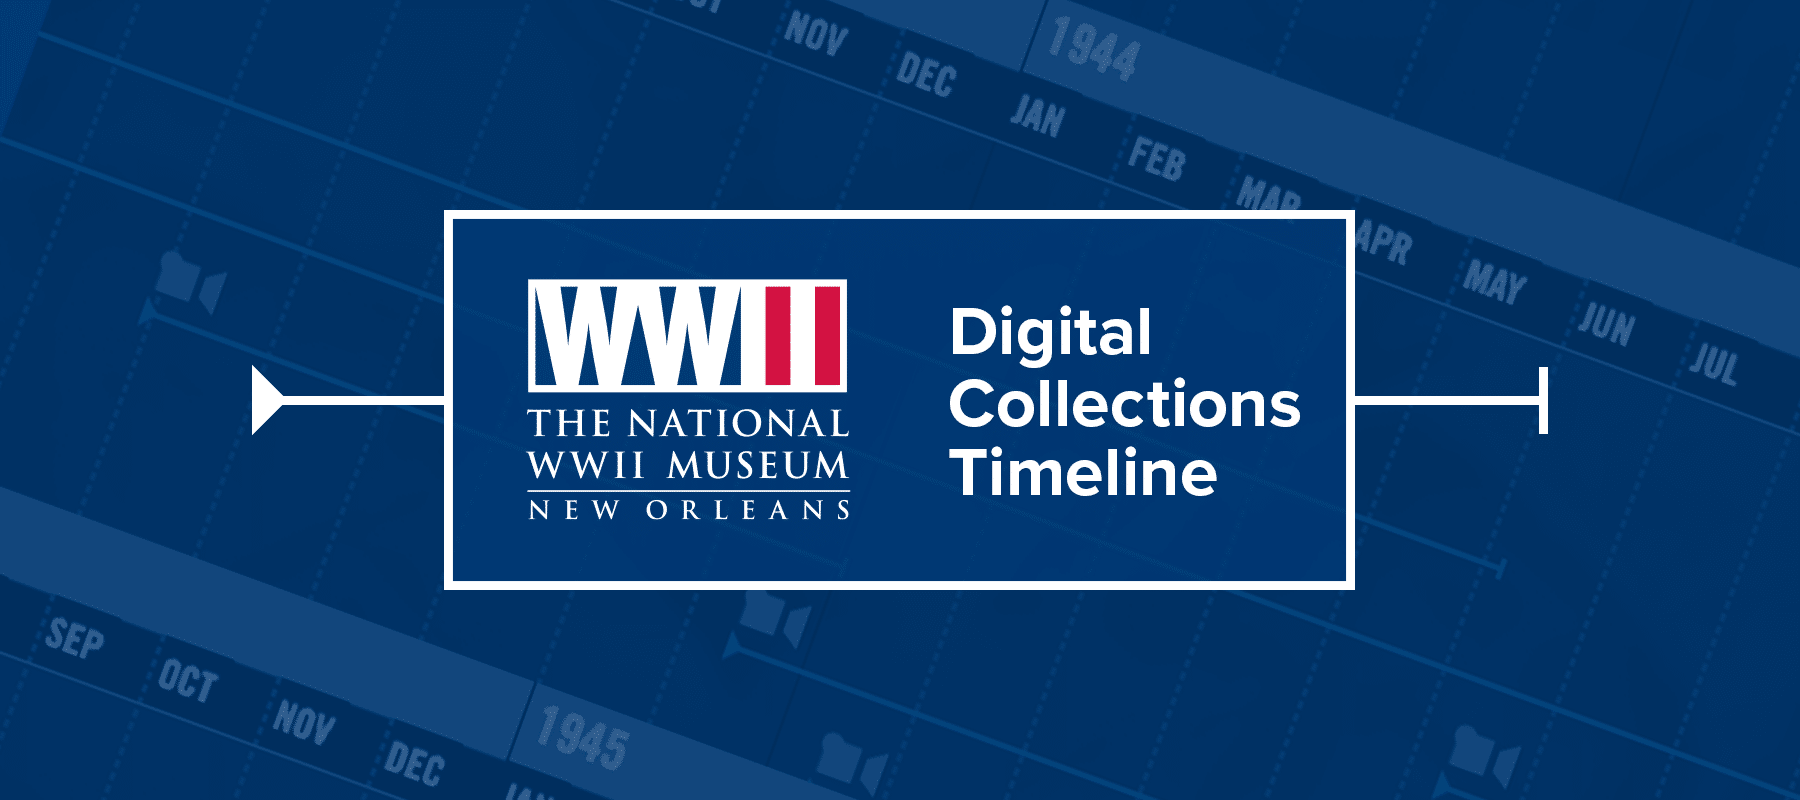 the national wwii museum digital collectionstimeline